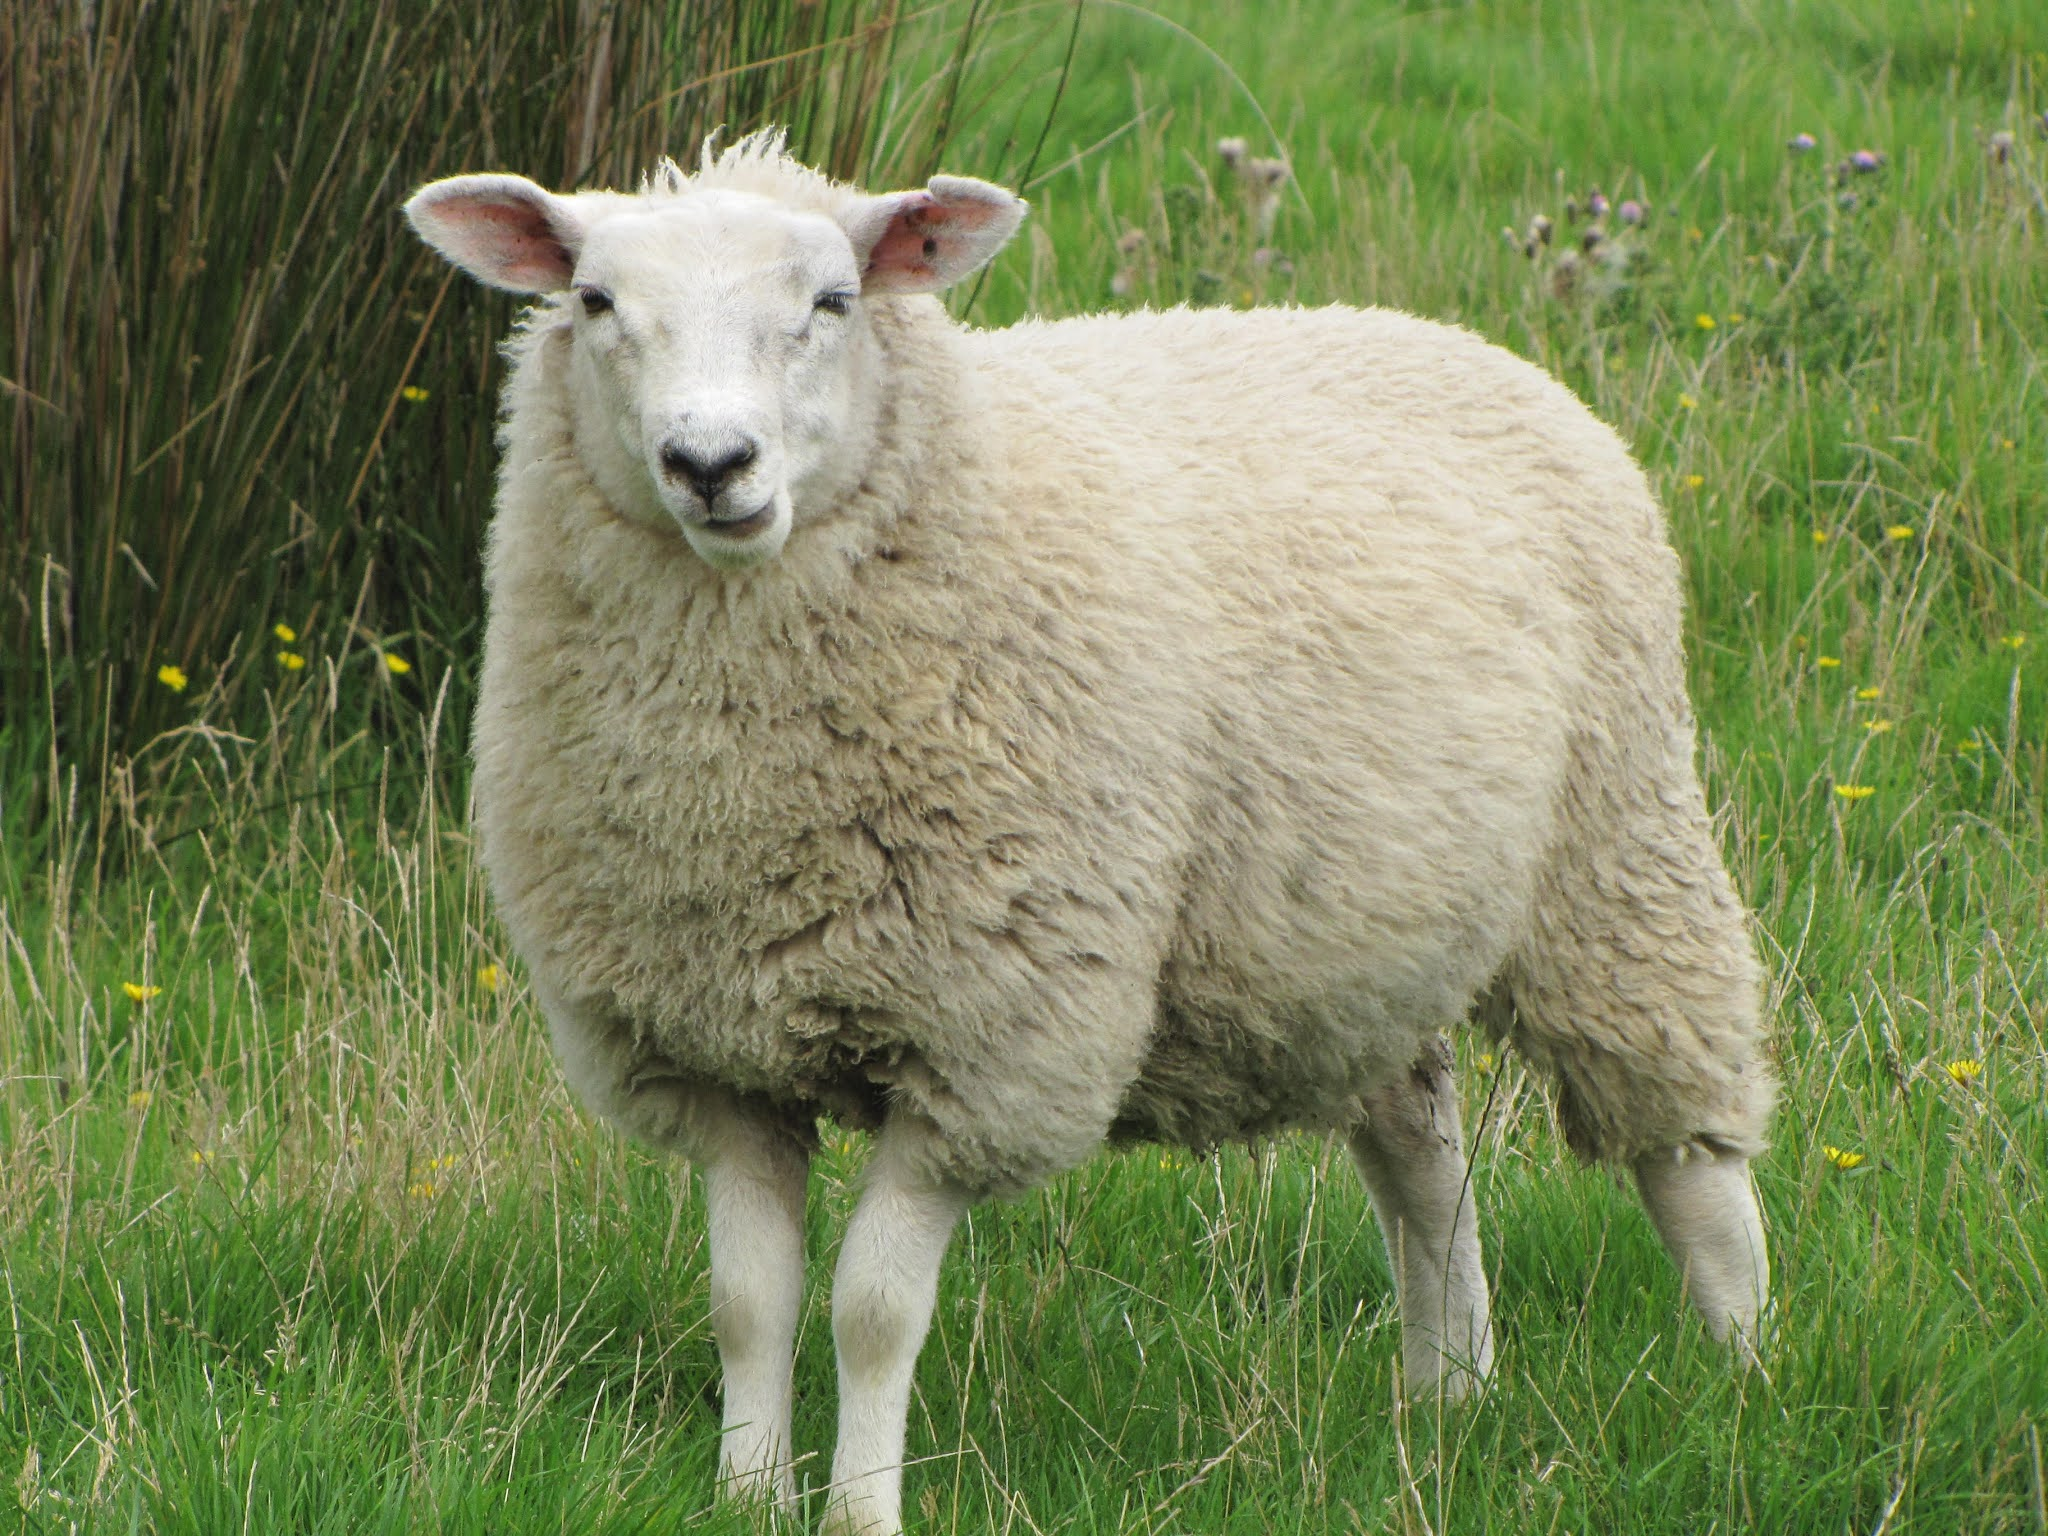 Sheep provide New Zealanders with cheaper meat, known as mutton.